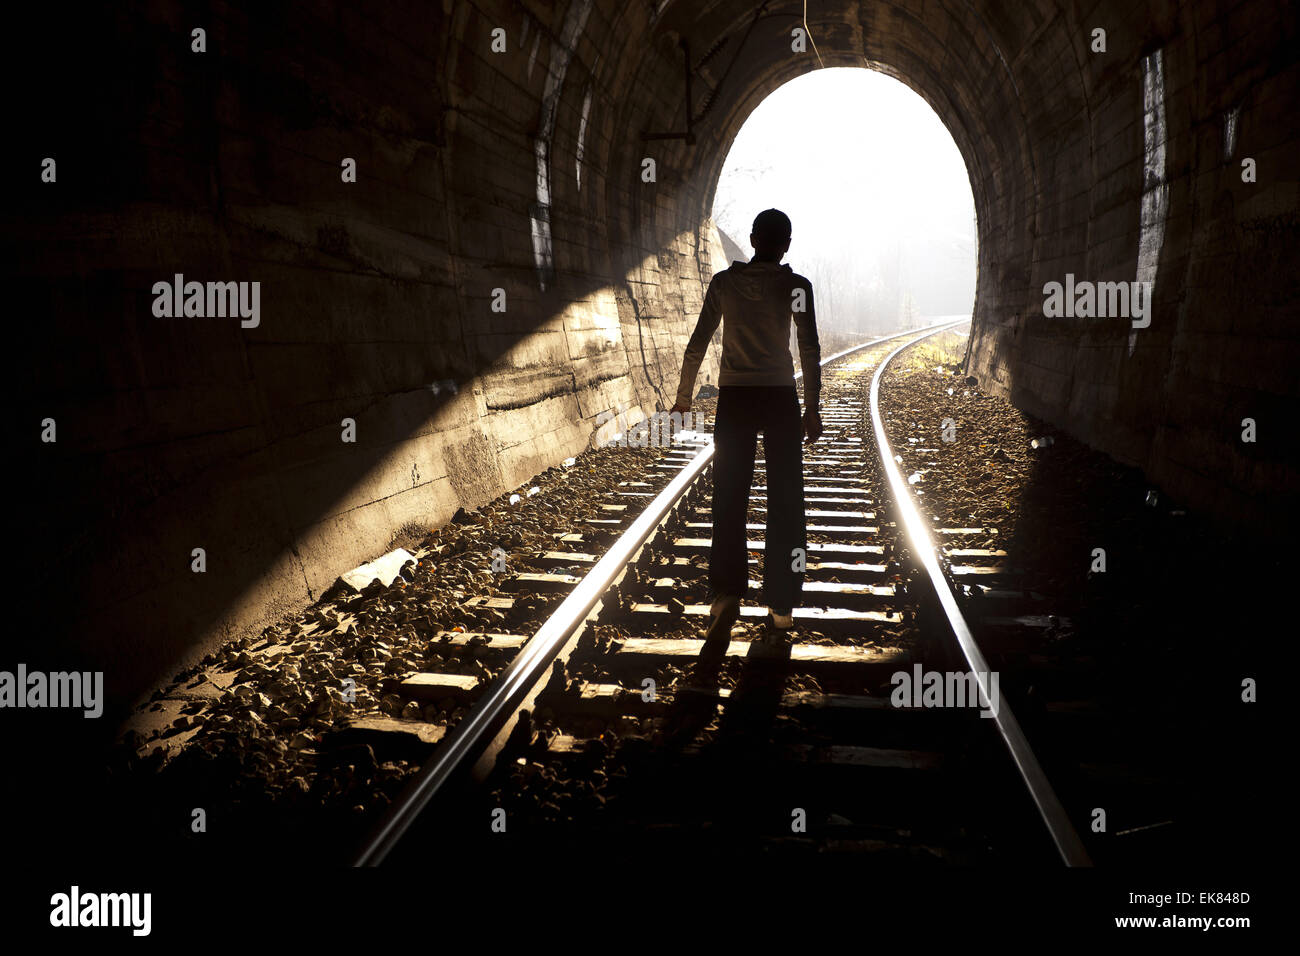 End of Tunnel - Stock Image